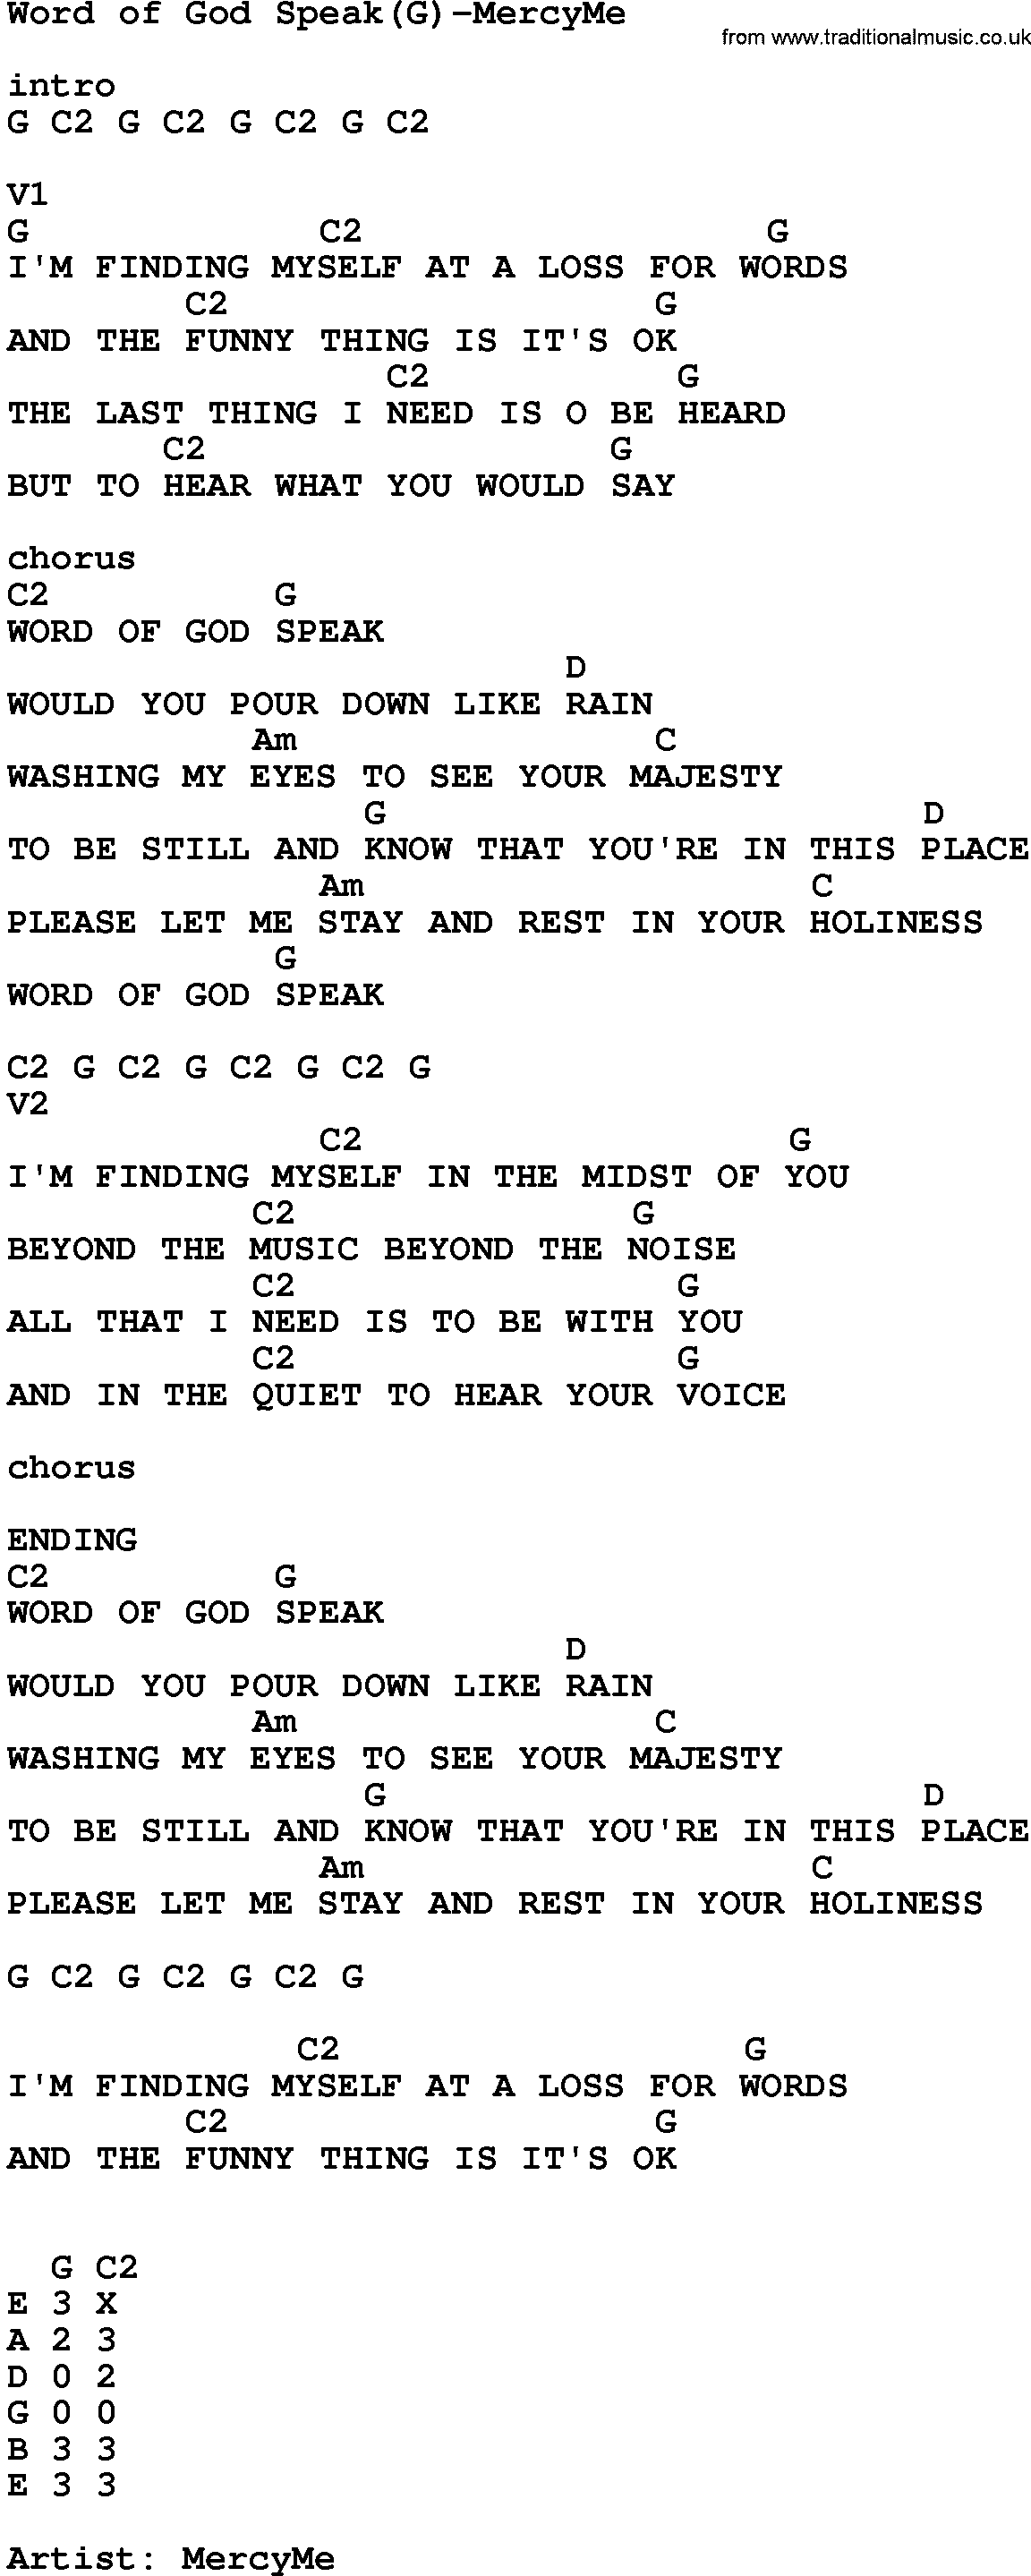 Gospel song word of god speakg mercyme lyrics and chords gospel song word of god speakg mercyme lyrics and chords hexwebz Images